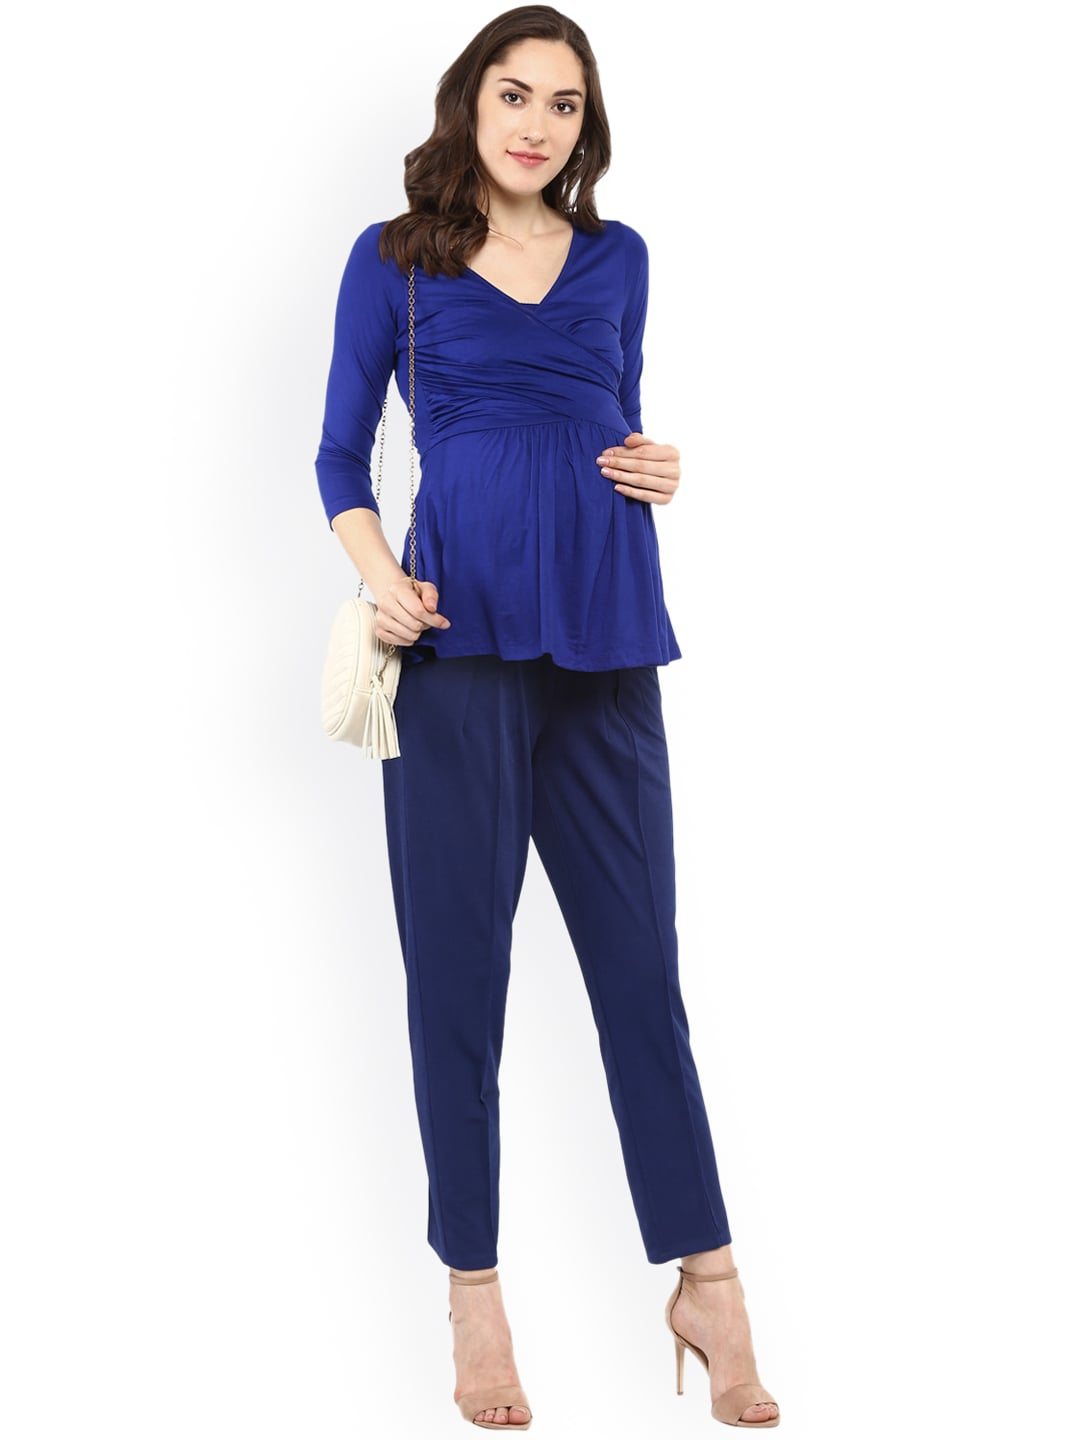 b8ff7080a7b1a Maternity - Buy Maternity online in India